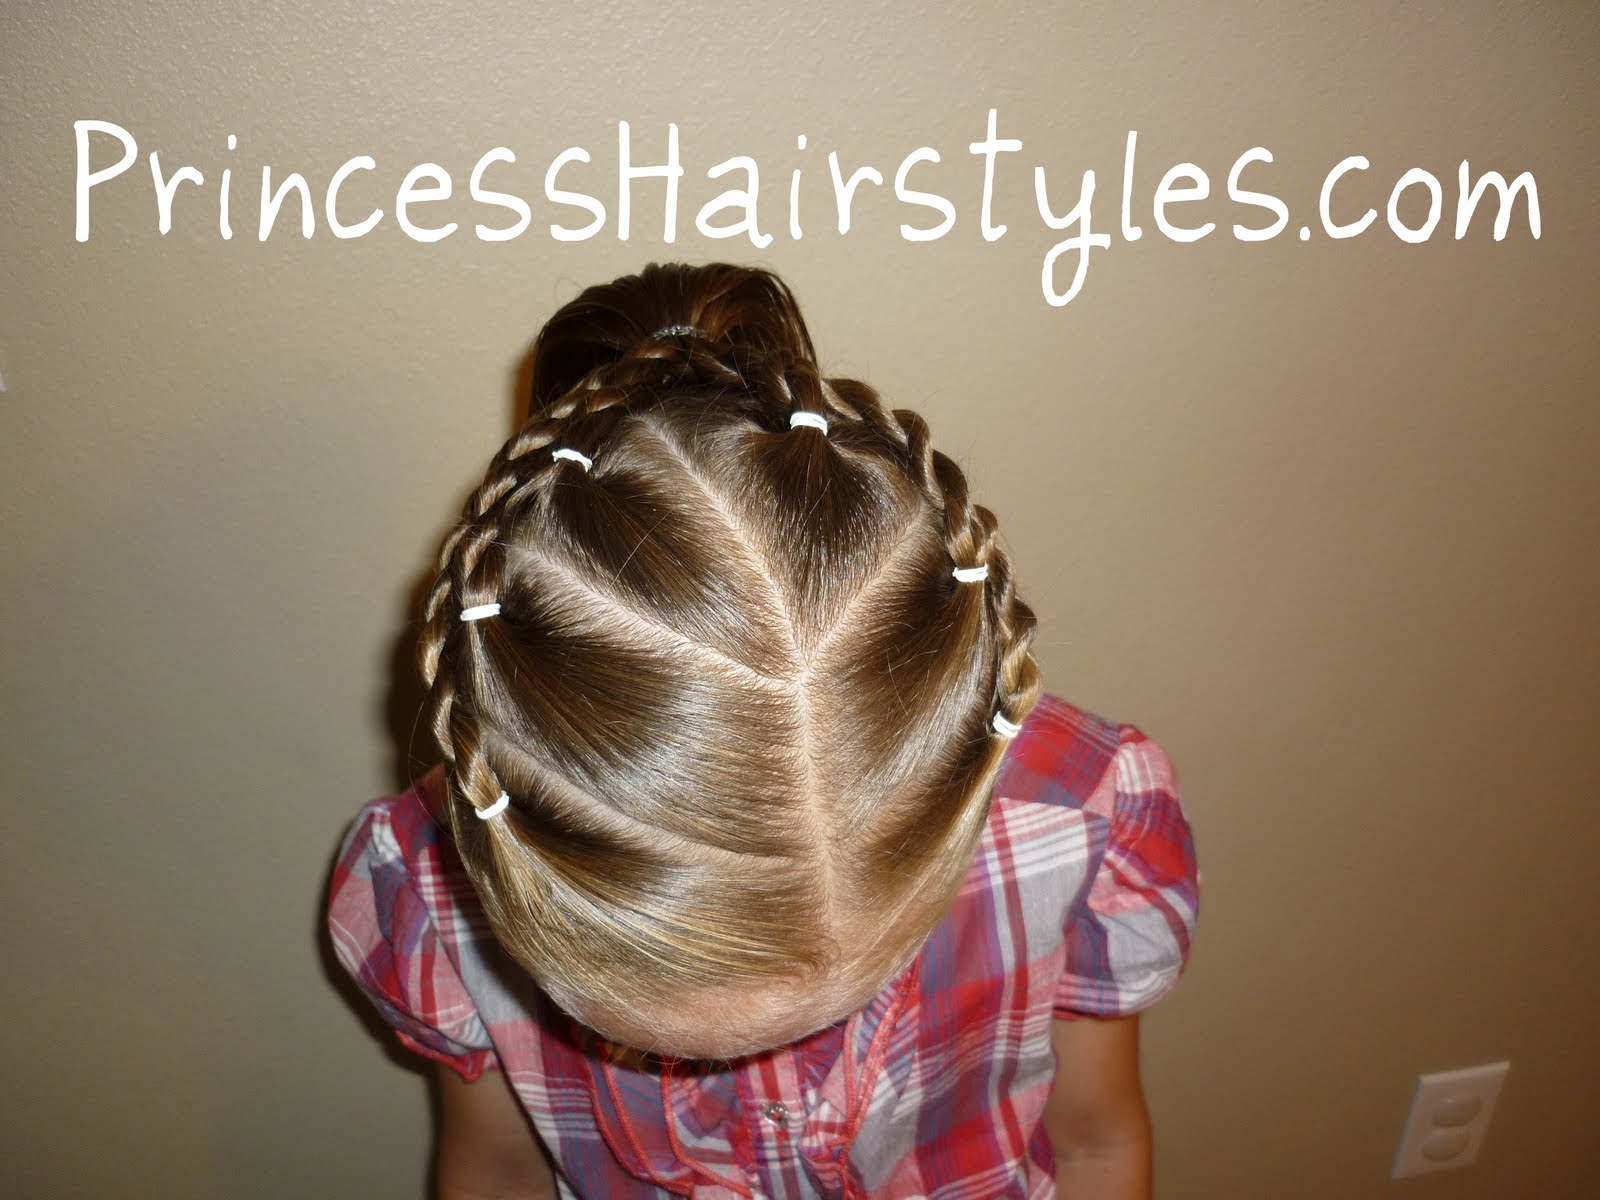 cute hairstyle for sports | hairstyles for girls - princess